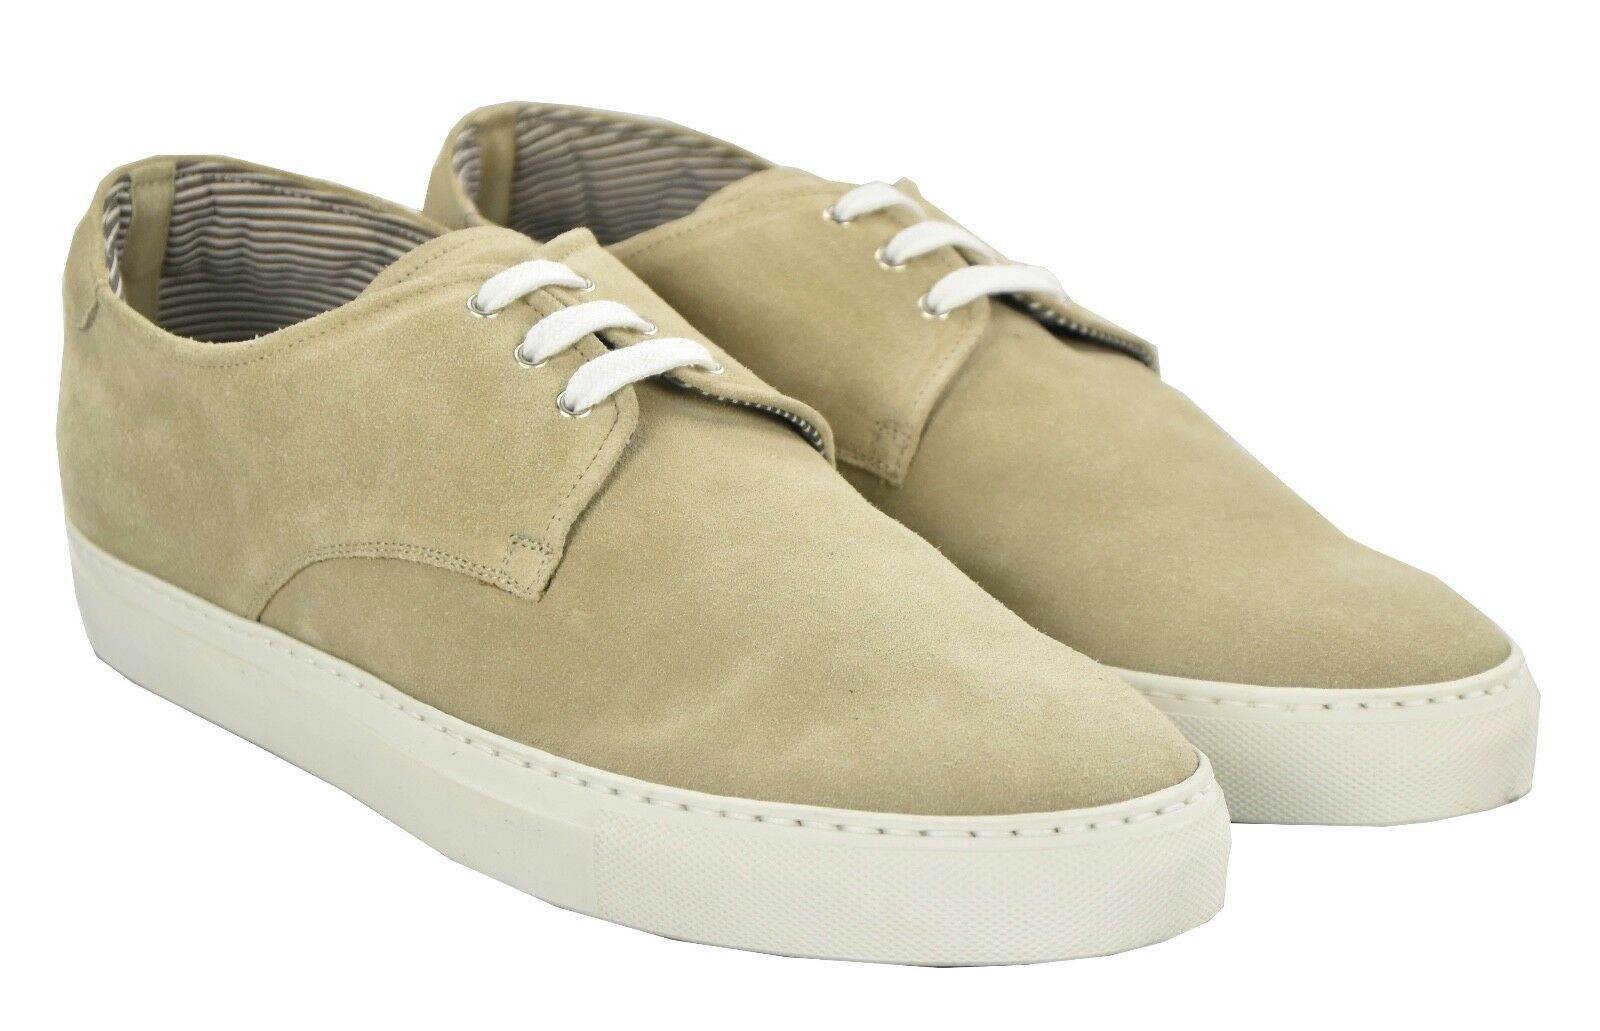 NEW KITON NAPOLI SNEAKERS SHOES 100% LEATHER SUEDE SIZE 10 US 43 O66